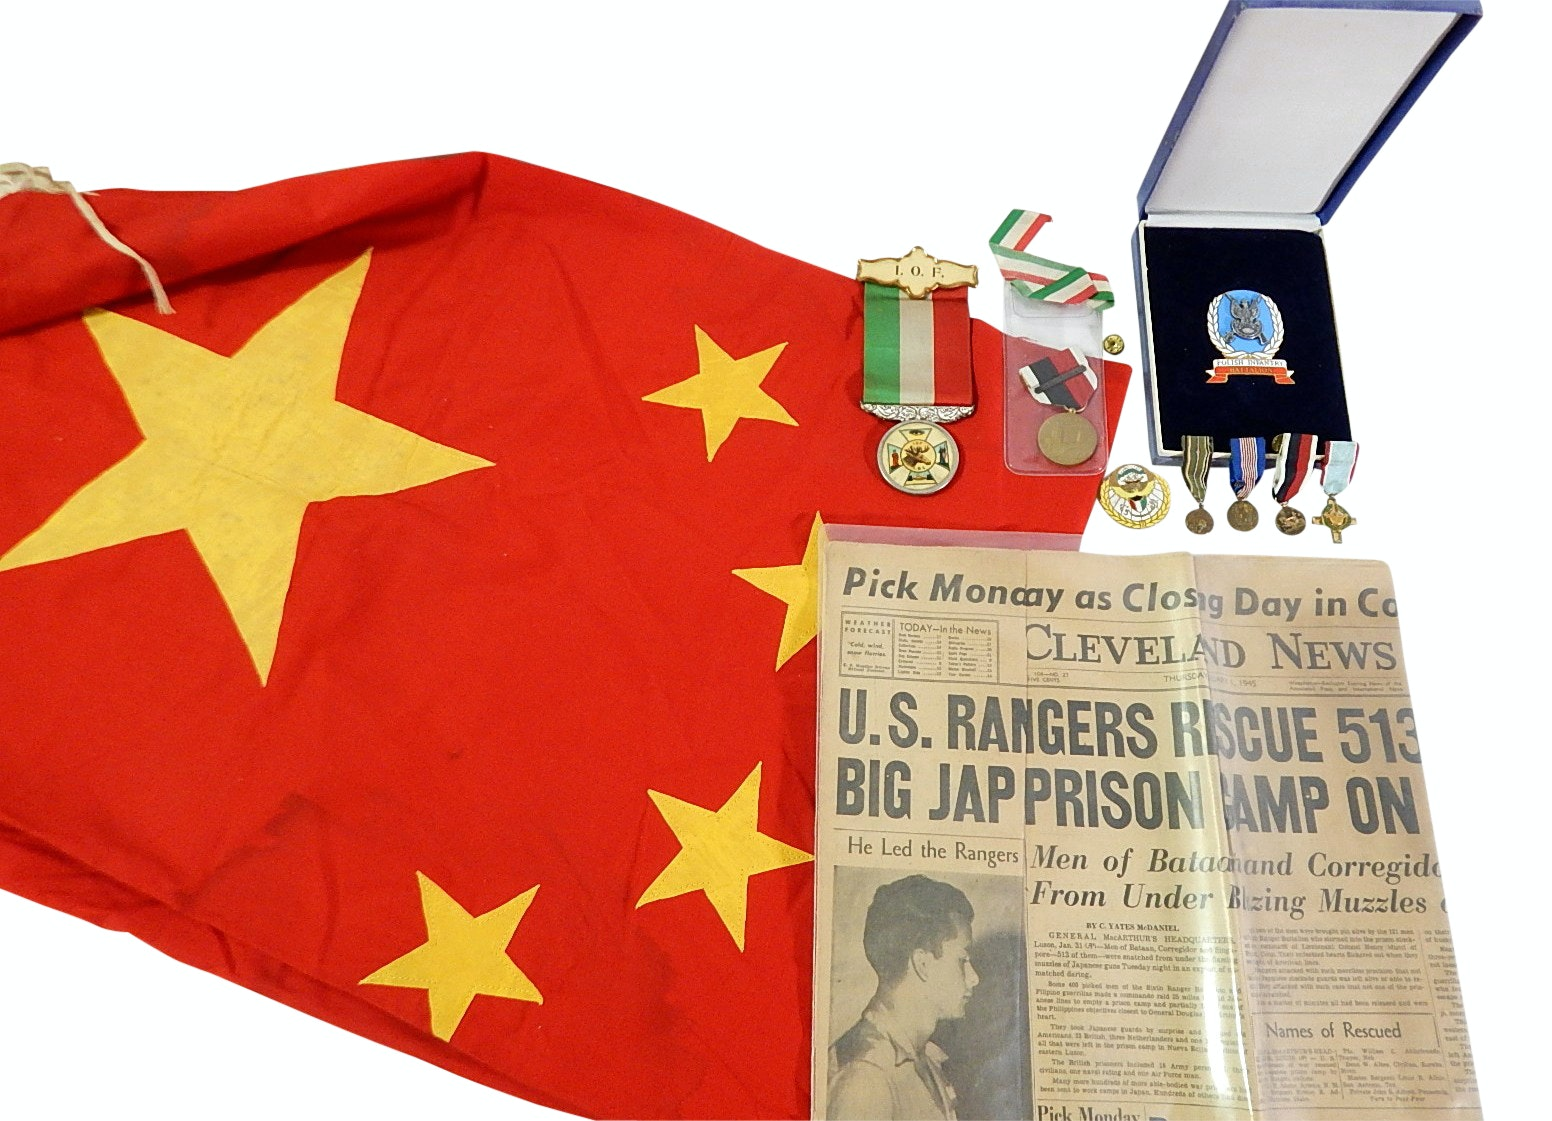 Foreign Related Military Collectibles with Medals, Newspapers,Vintage China Flag